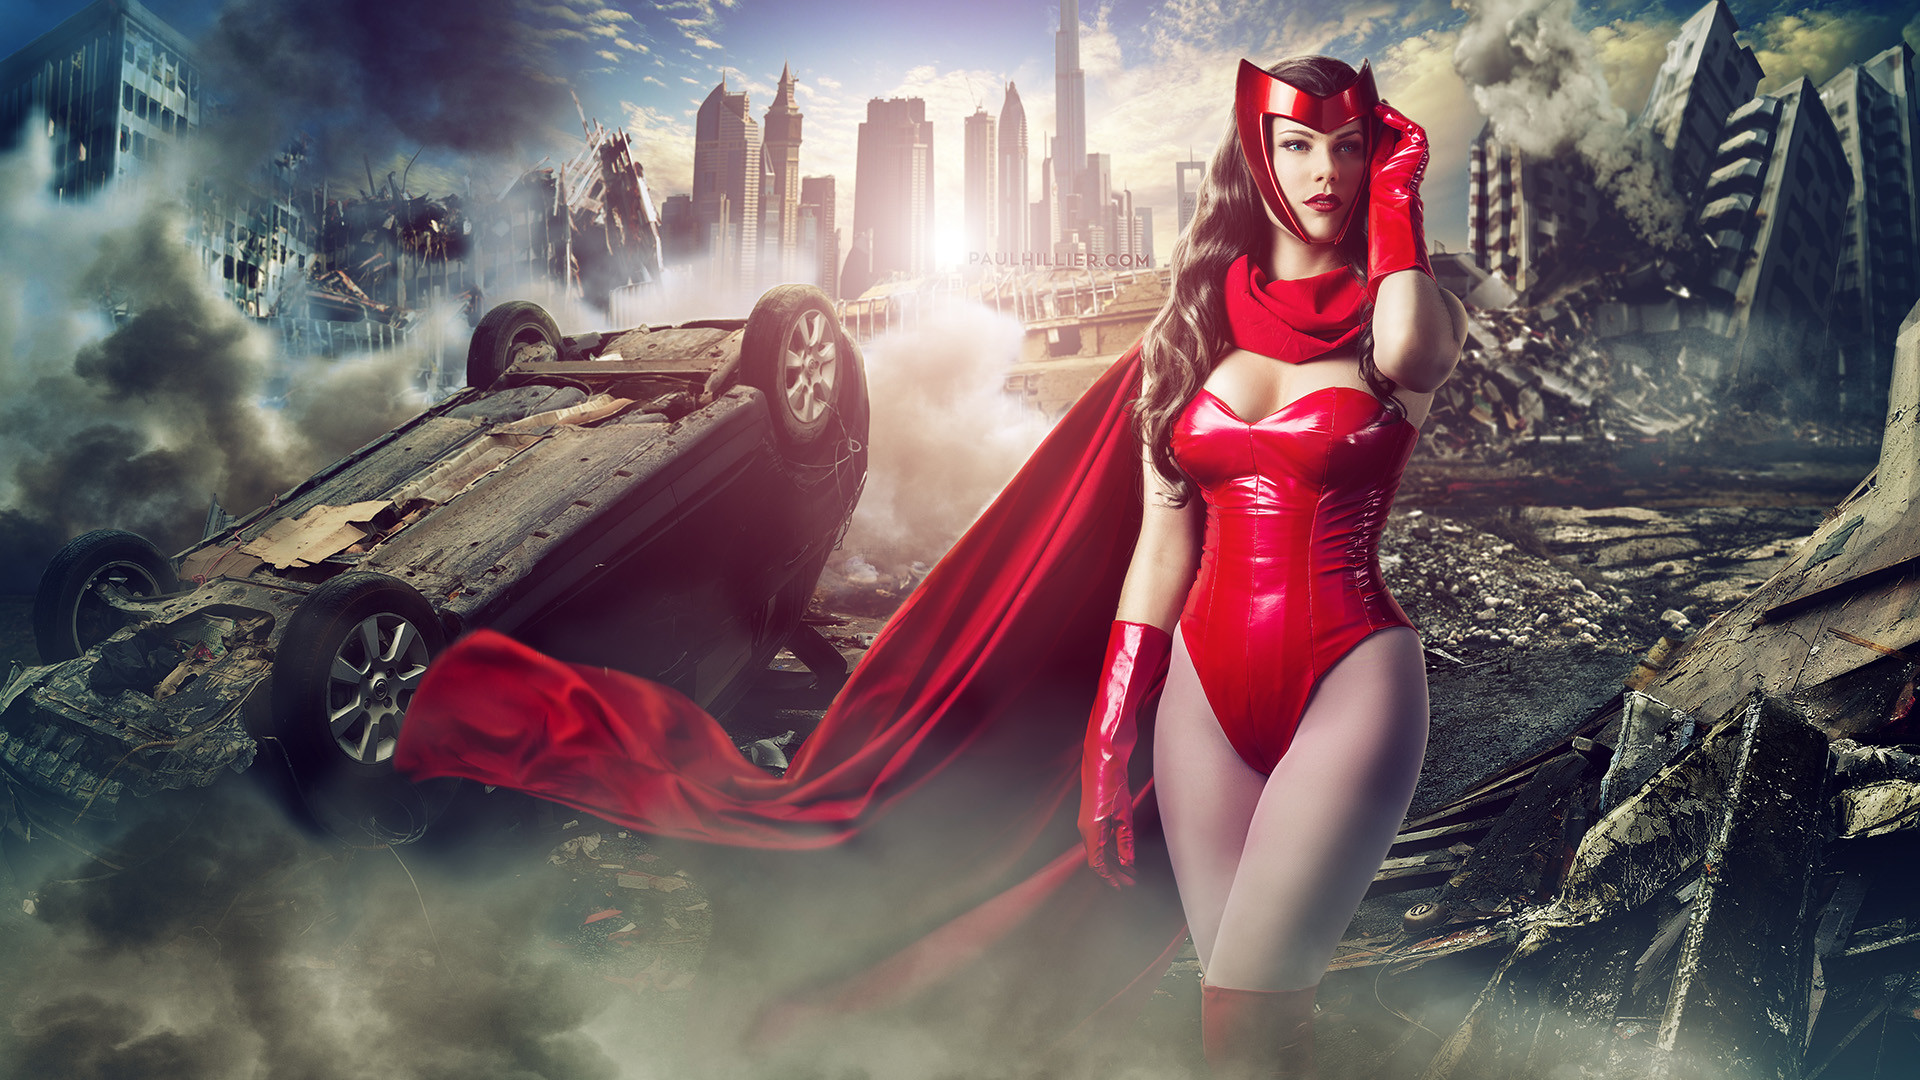 Character: Scarlet Witch (Wanda Maximoff) / From: MARVEL Comics 'Avengers'